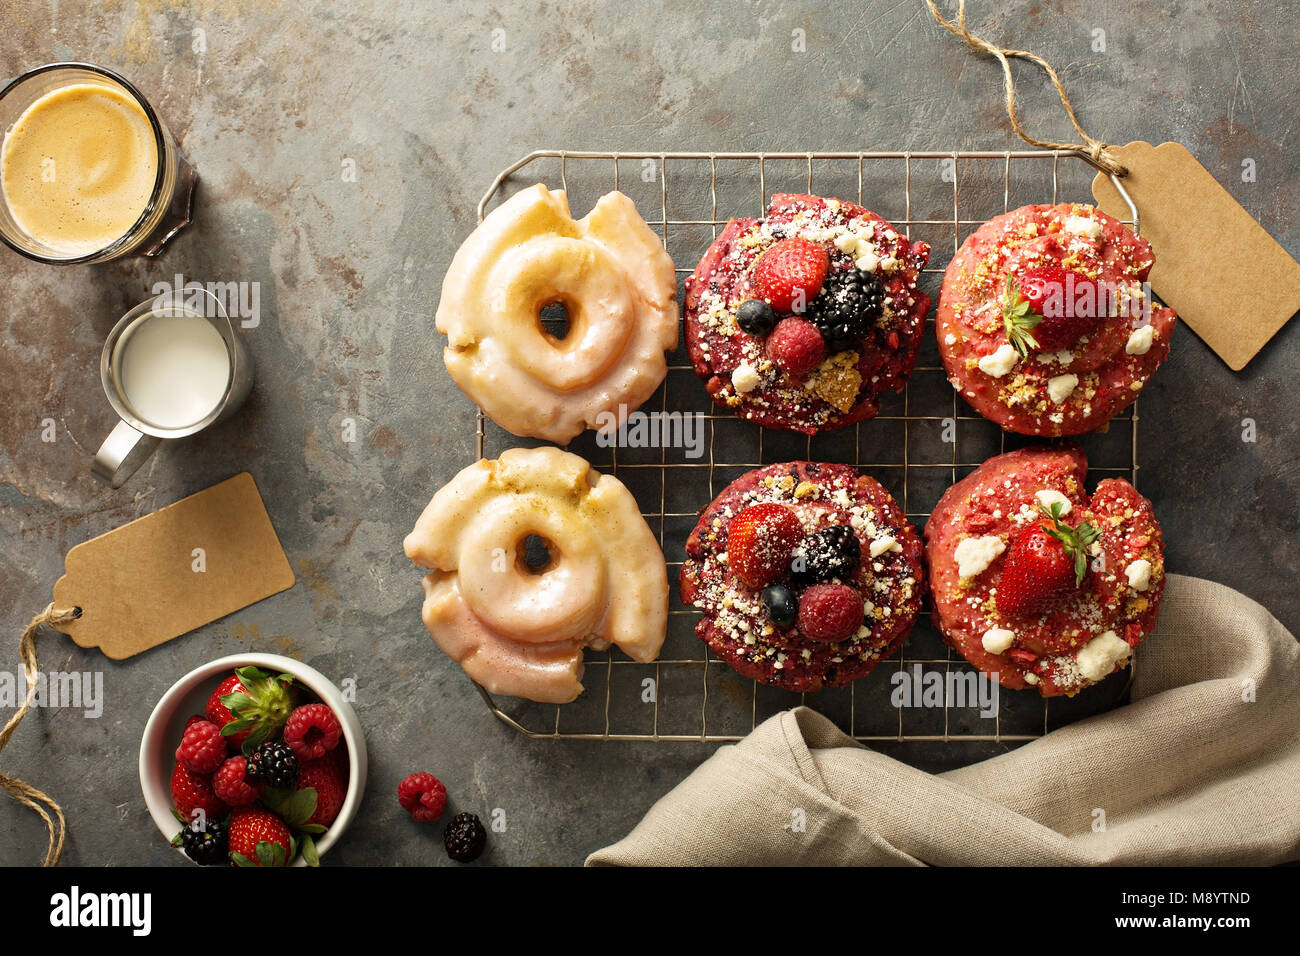 Variety of donuts on a cooling rack - Stock Image